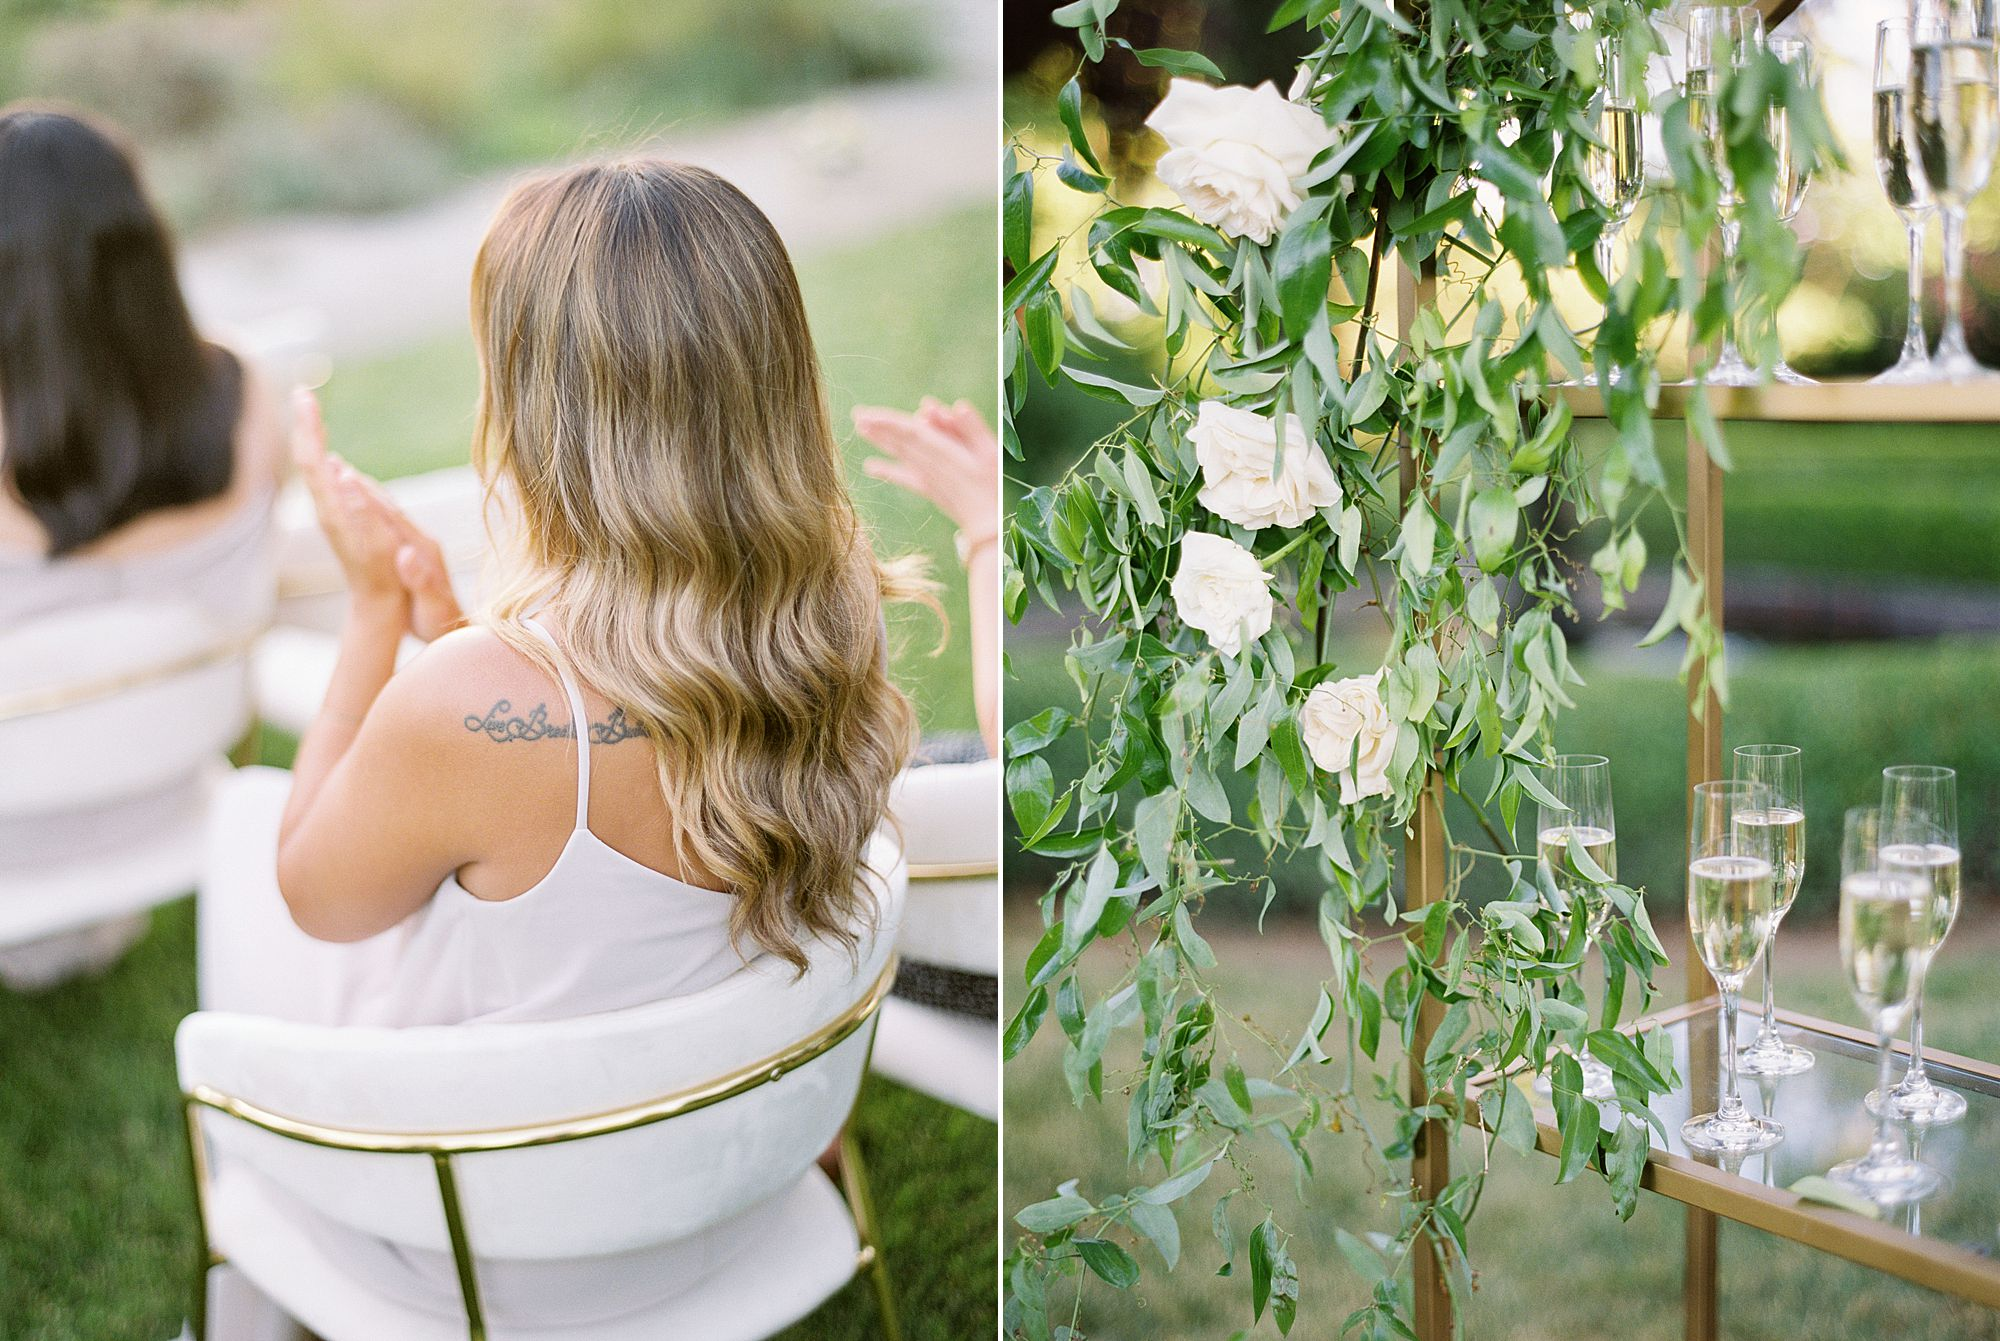 Park Winters Micro-Wedding Inspiration on Style Me Pretty - Stephanie Teague Events - Ashley Baumgartner - Park Winters Wedding - Black Tie Wedding - Micro-Wedding Sacramento Photographer_0041.jpg